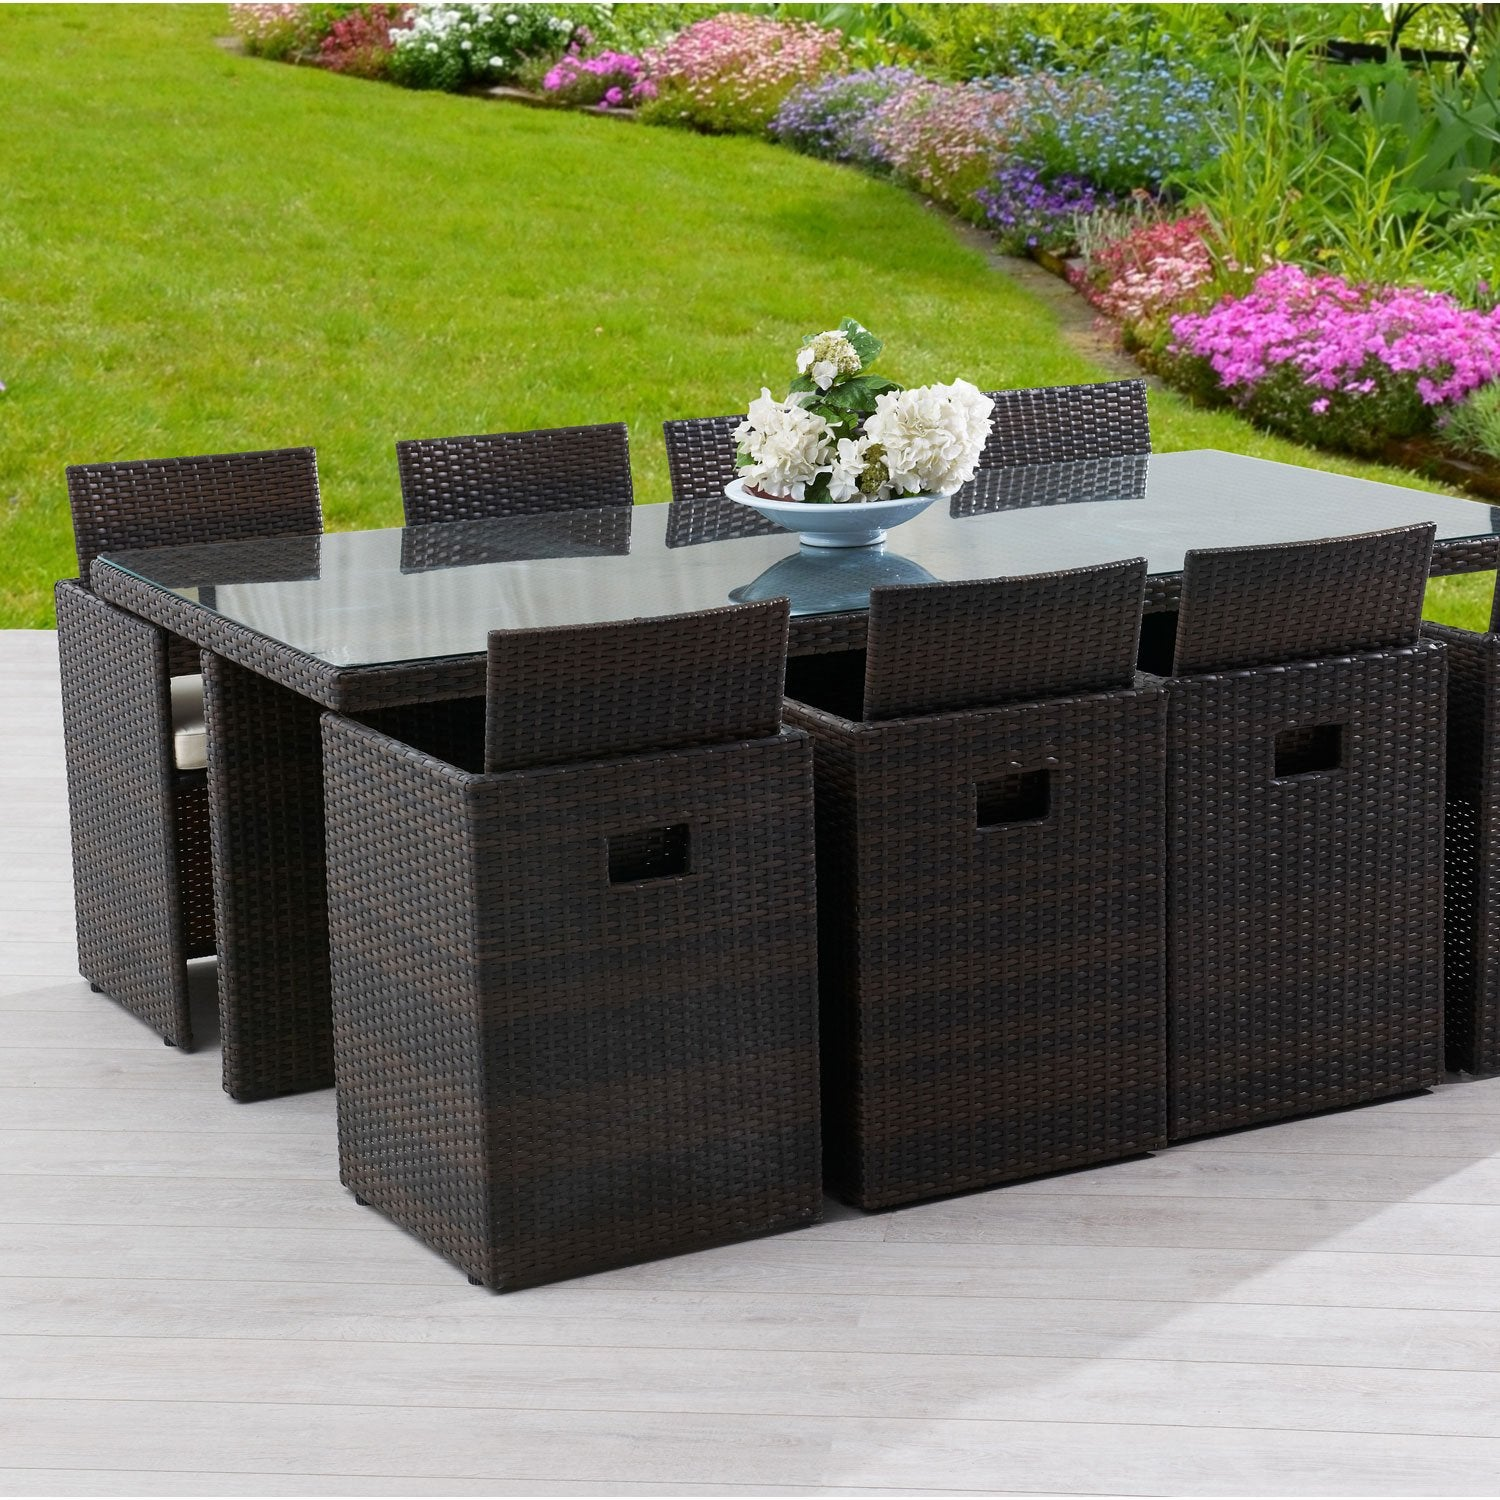 Salon de jardin encastrable r sine tress e marron 1 table for Salon resine tressee pas cher